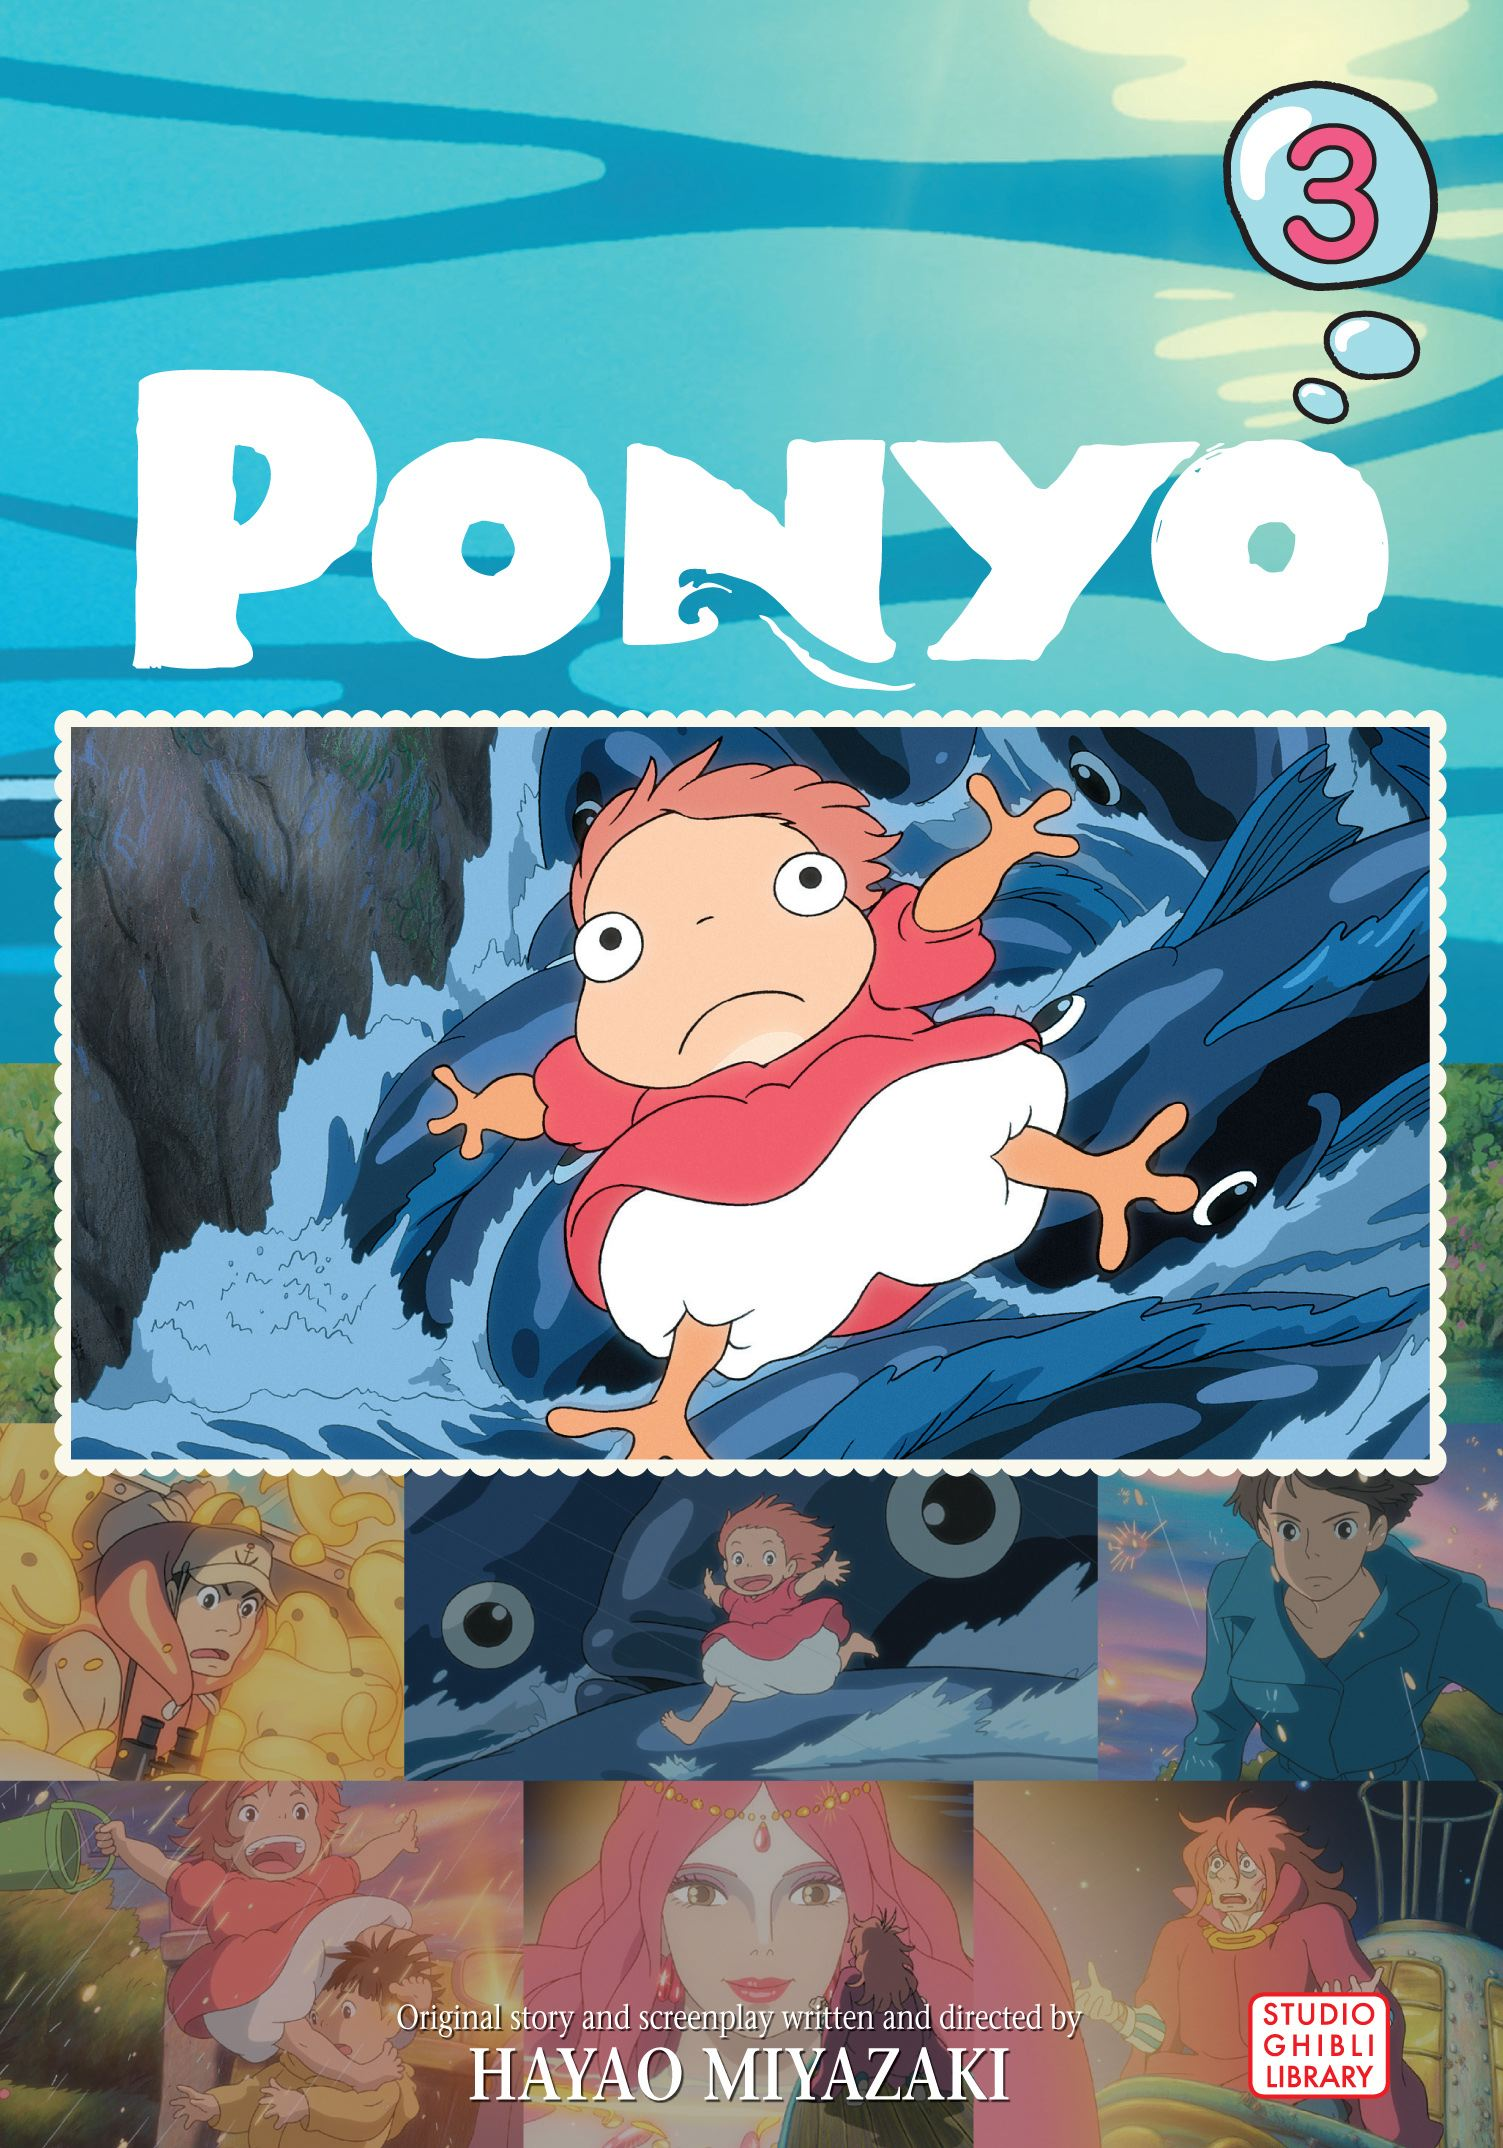 Ponyo Film Comic Vol 3  Book by Hayao Miyazaki  Official Publisher Page  Simon  Schuster